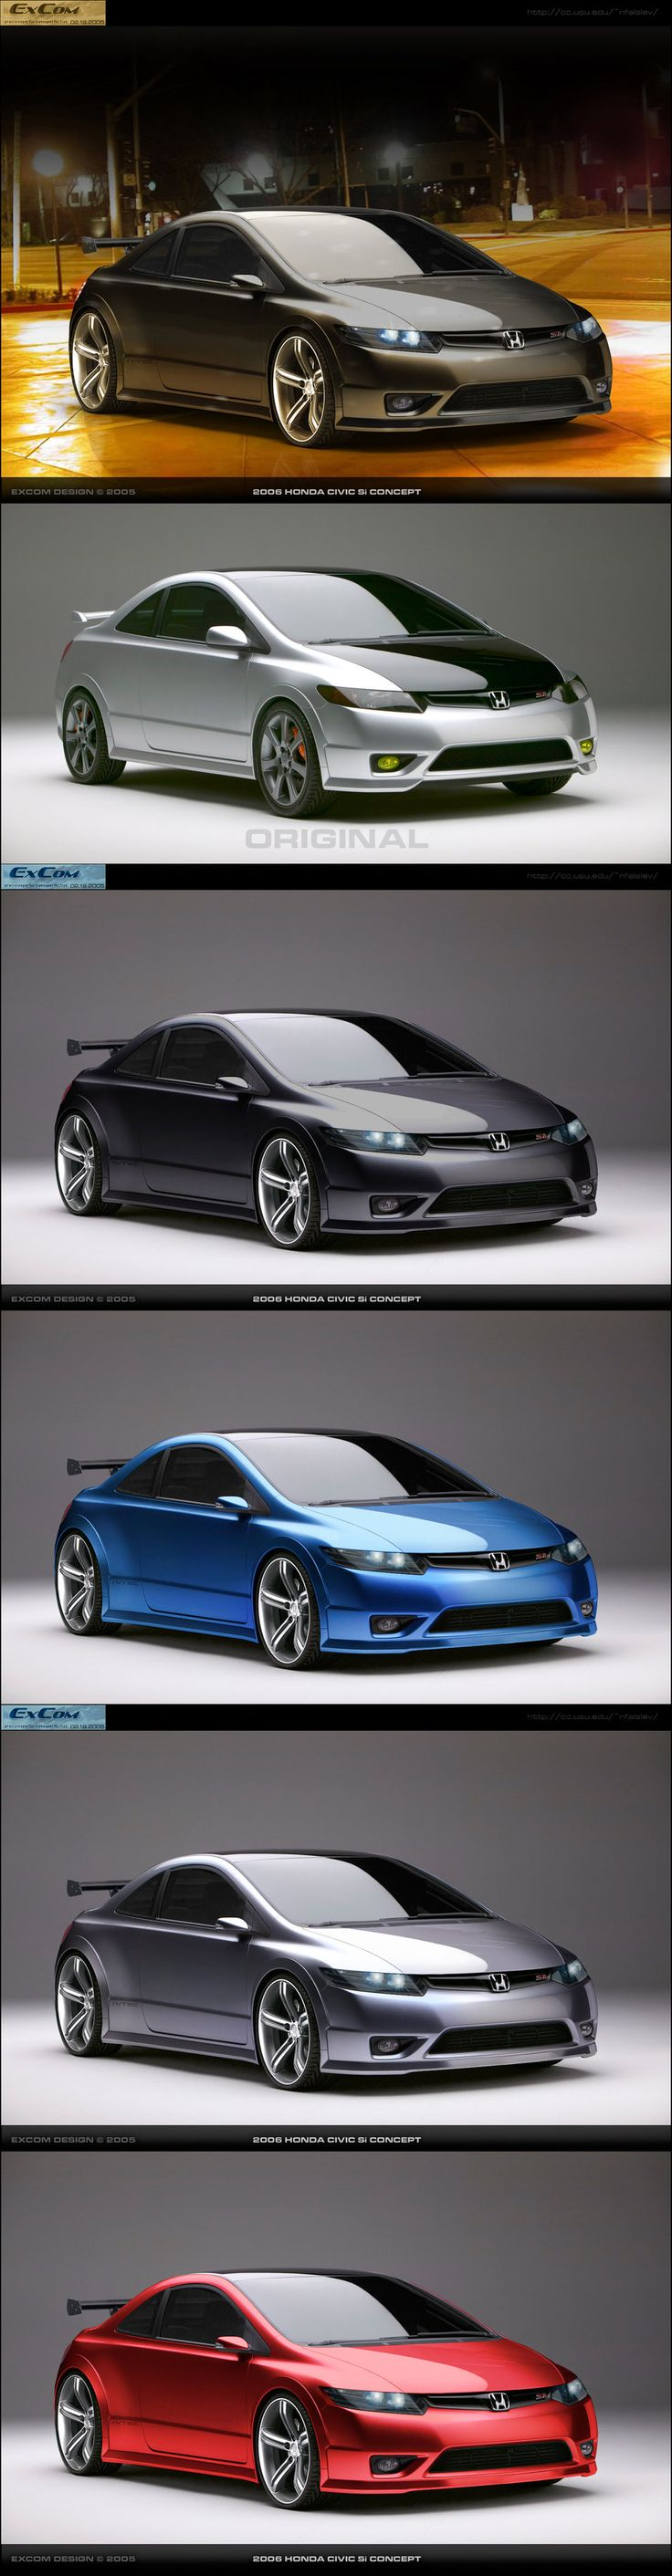 Photochop Portfolio Item Vehicle: 2006 Honda Civic Si Concept Date: 02.19.2005 The 2006 Honda Civic Si concept is stunning as is, but what if it didn't have to share a chassis with lesser Civics? W...